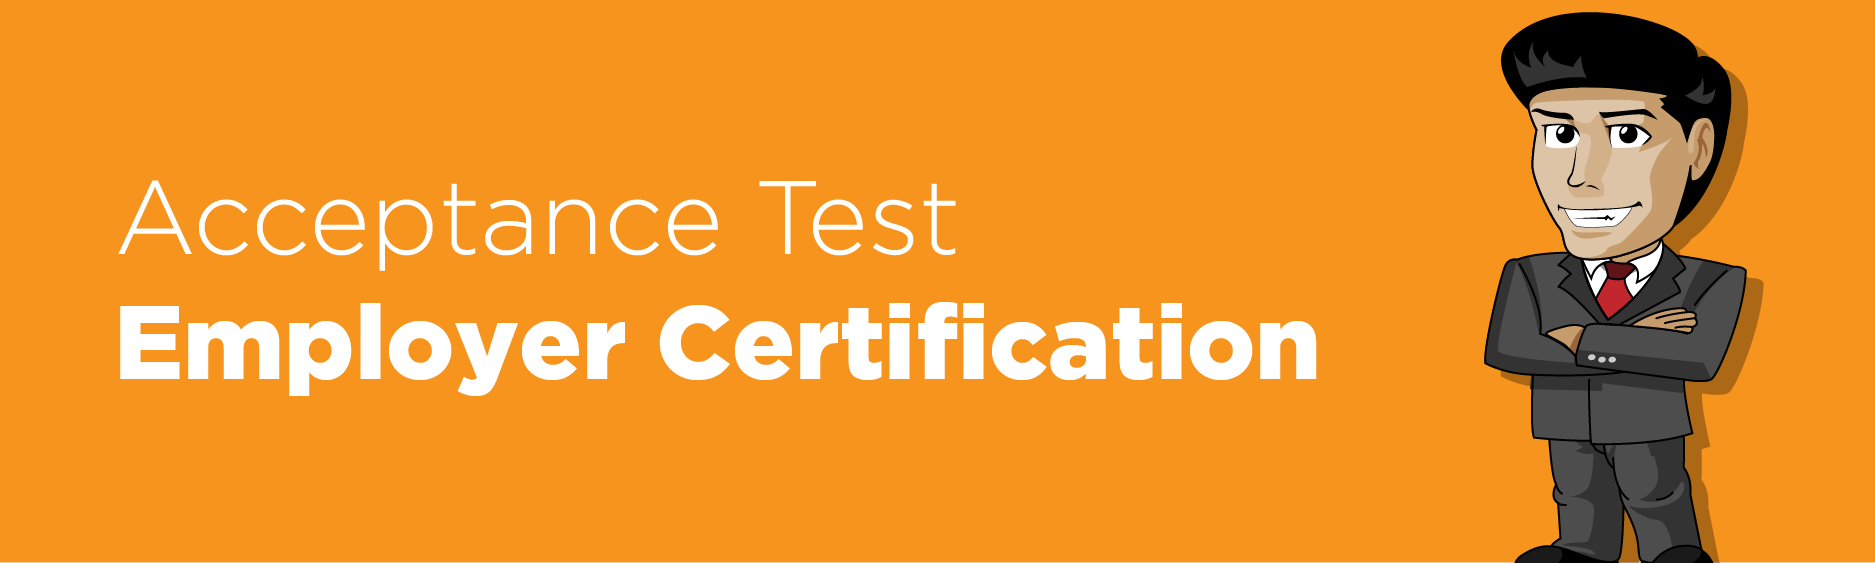 Acceptance Test Employer Application